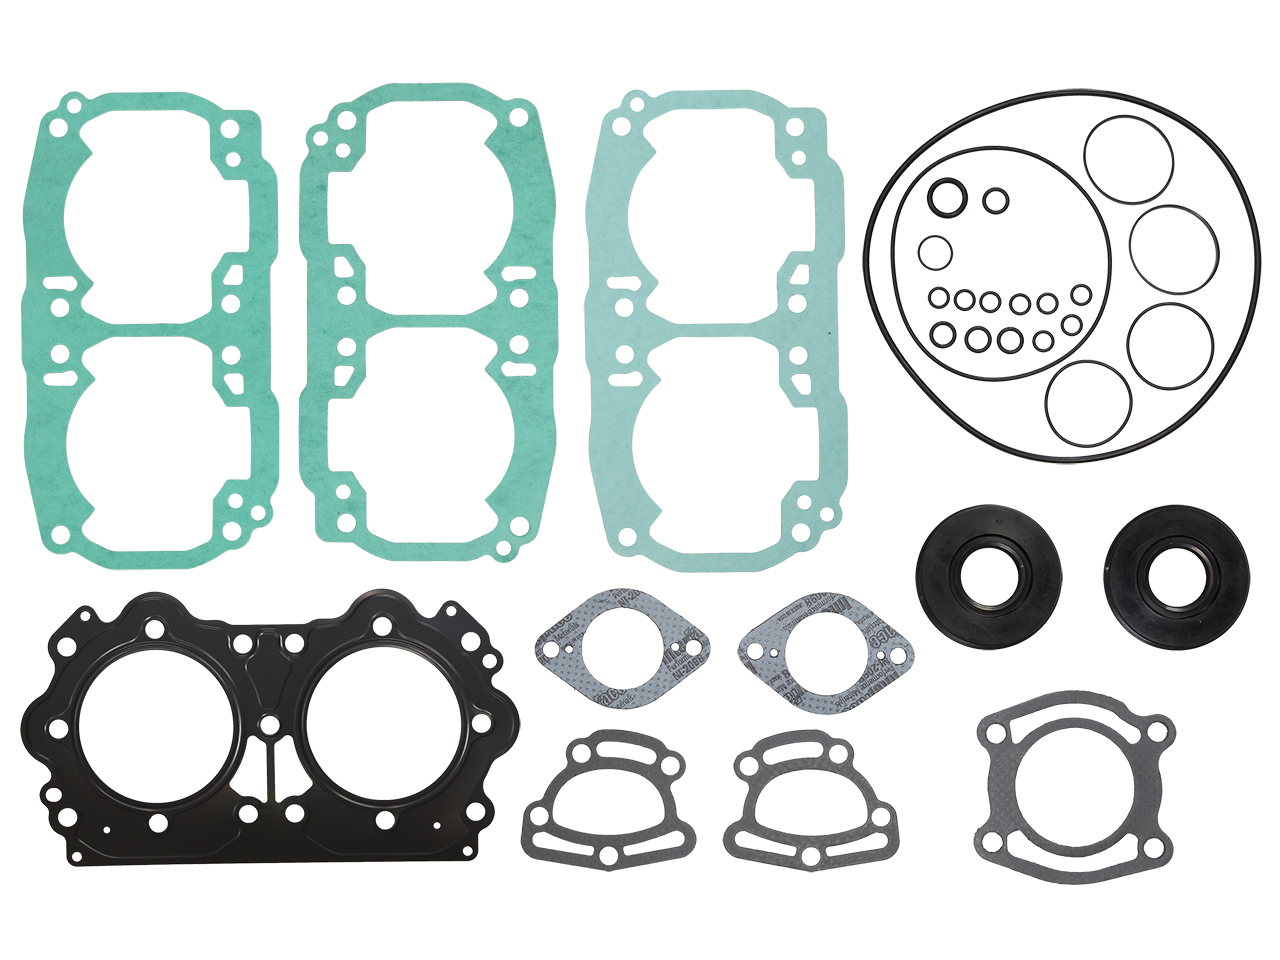 NAMURA COMPLETE GASKET KIT NW-10006F